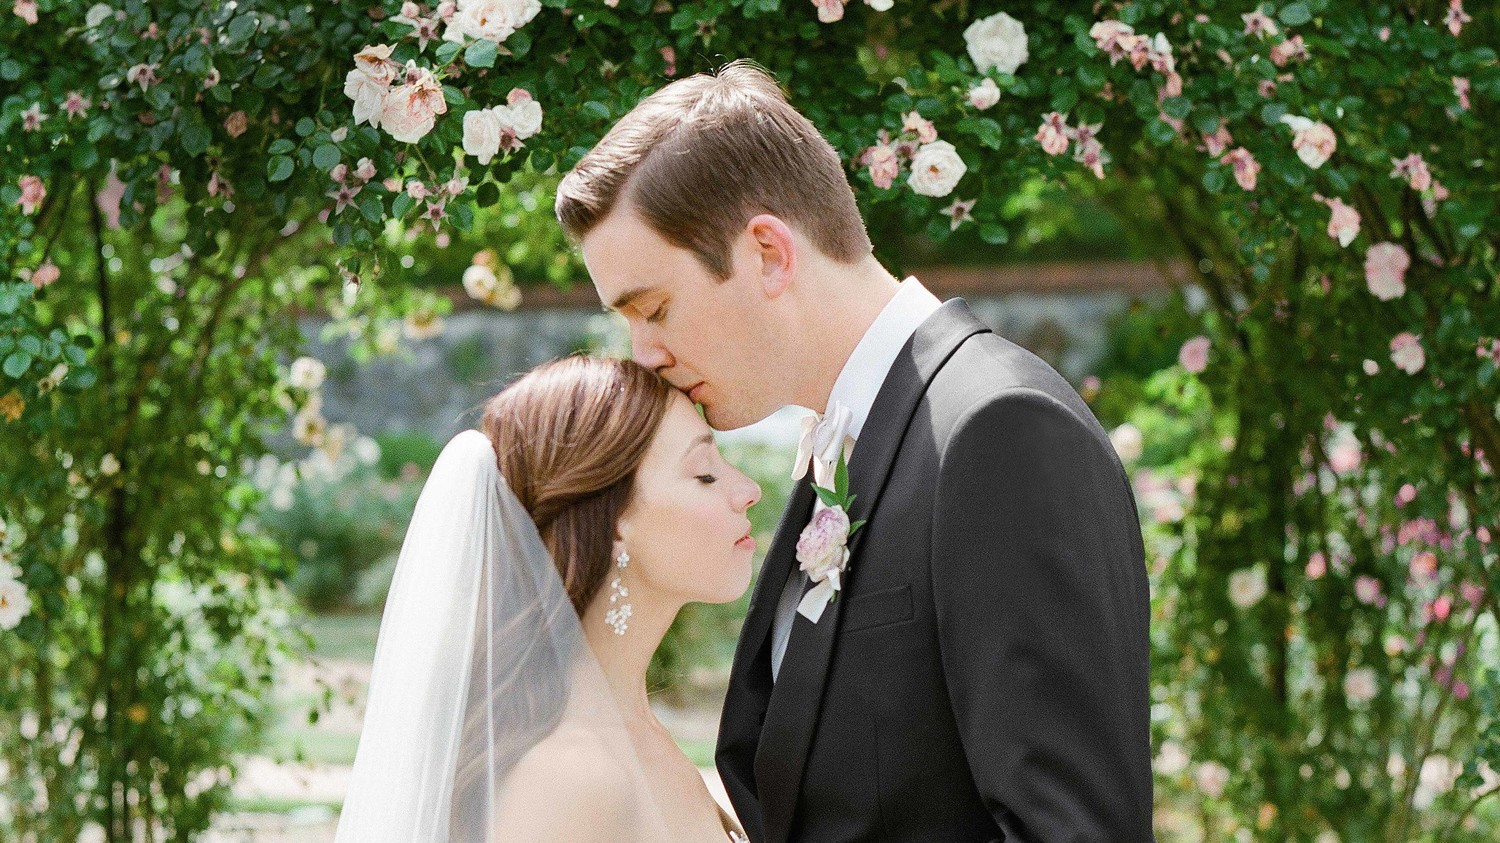 Martha Stewart Weddings: Wedding Budget Planner: How To Budget For Your Big Day